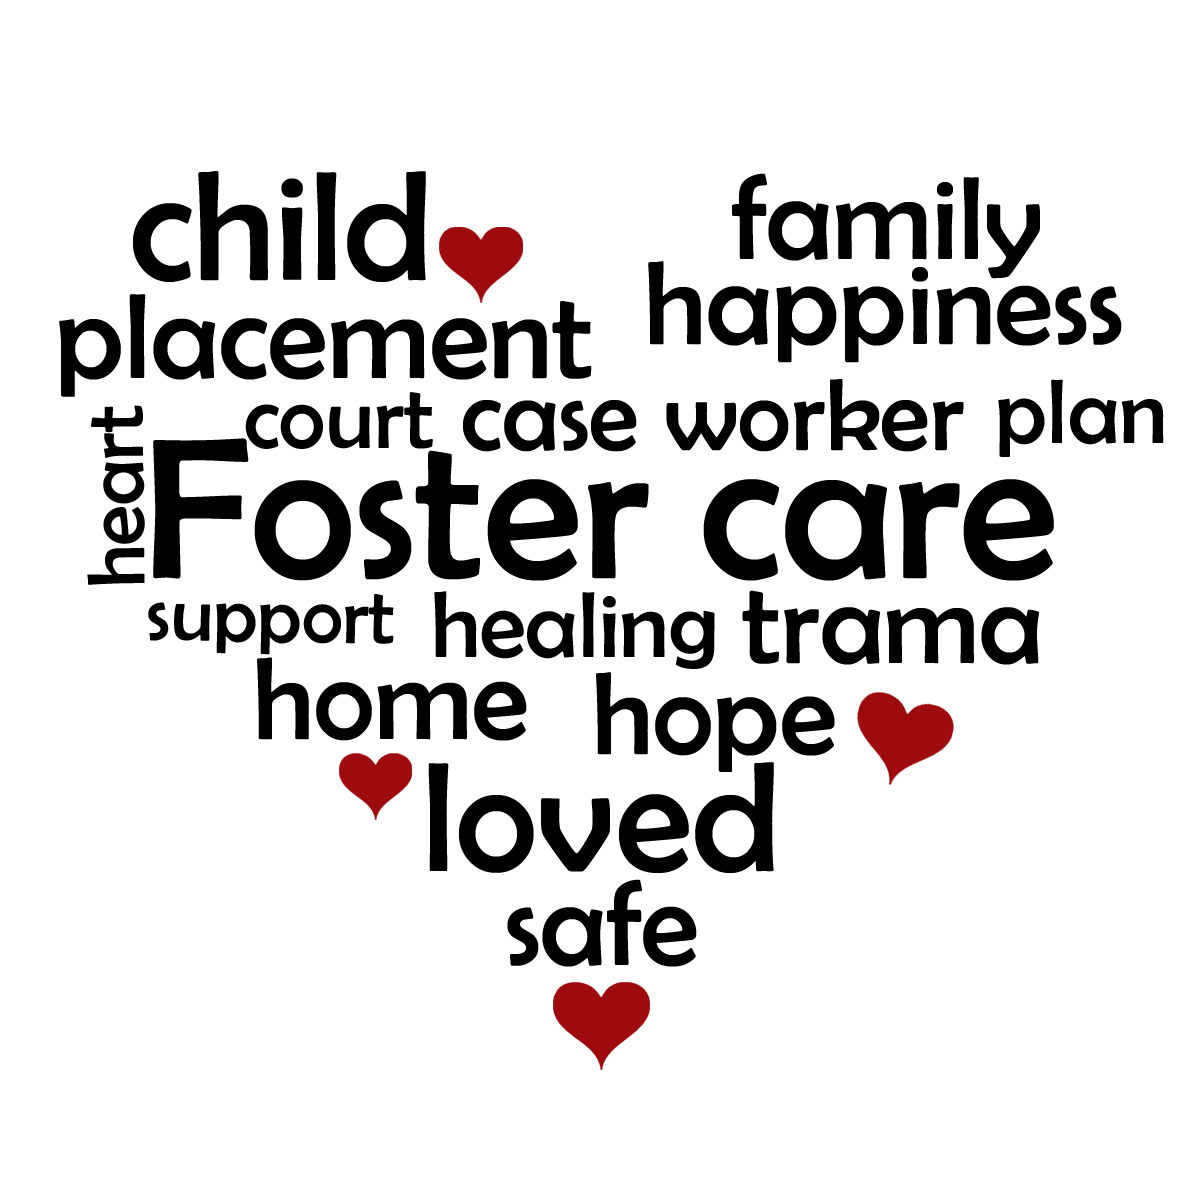 freeuse library Foster care transparent . Caring clipart adoption.